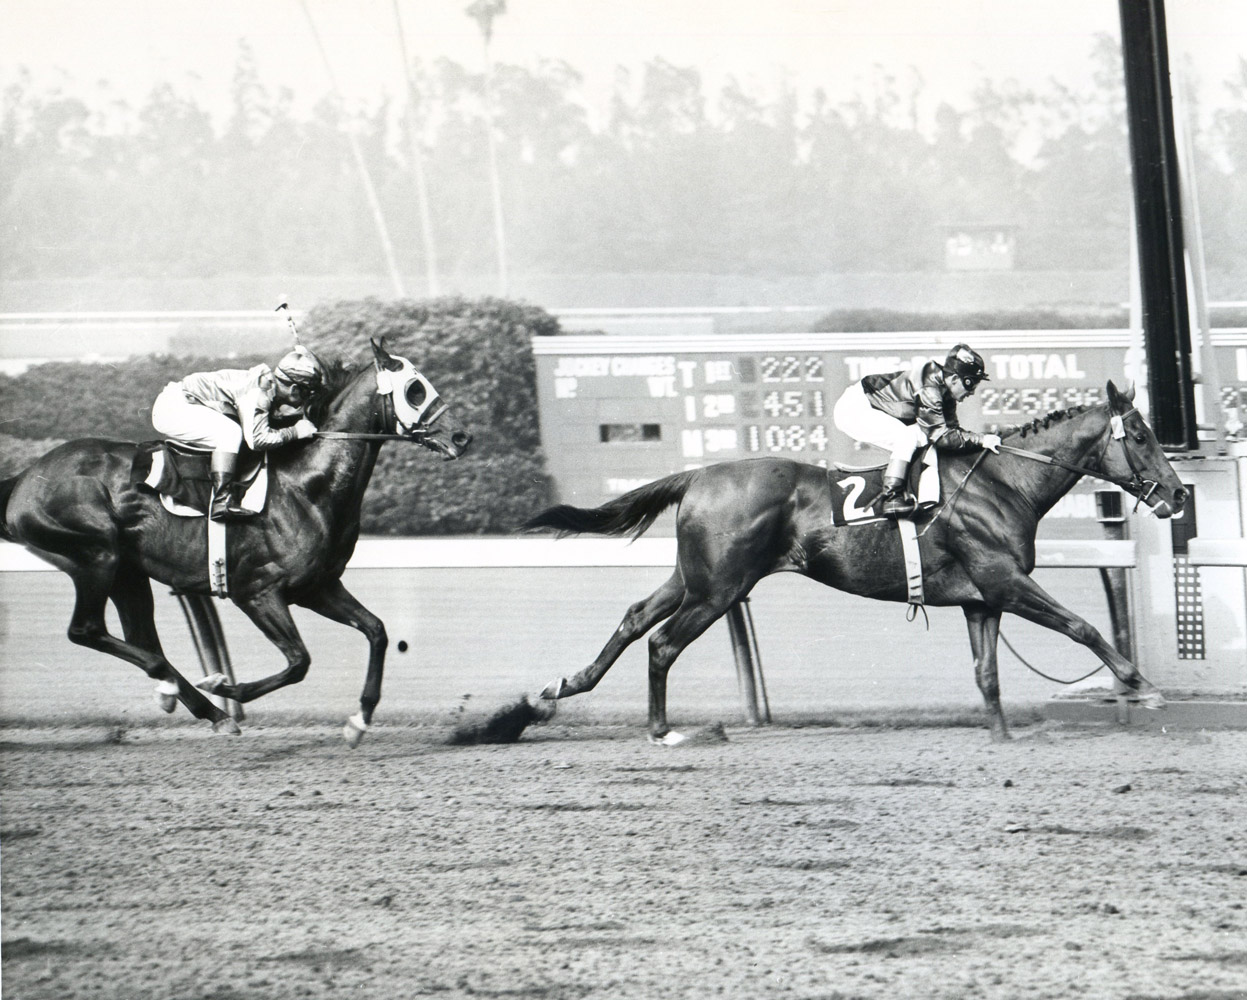 Swaps (Bill Shoemaker up) winning the 1956 Argonaut Handicap at Hollywood Park (Museum Collection)